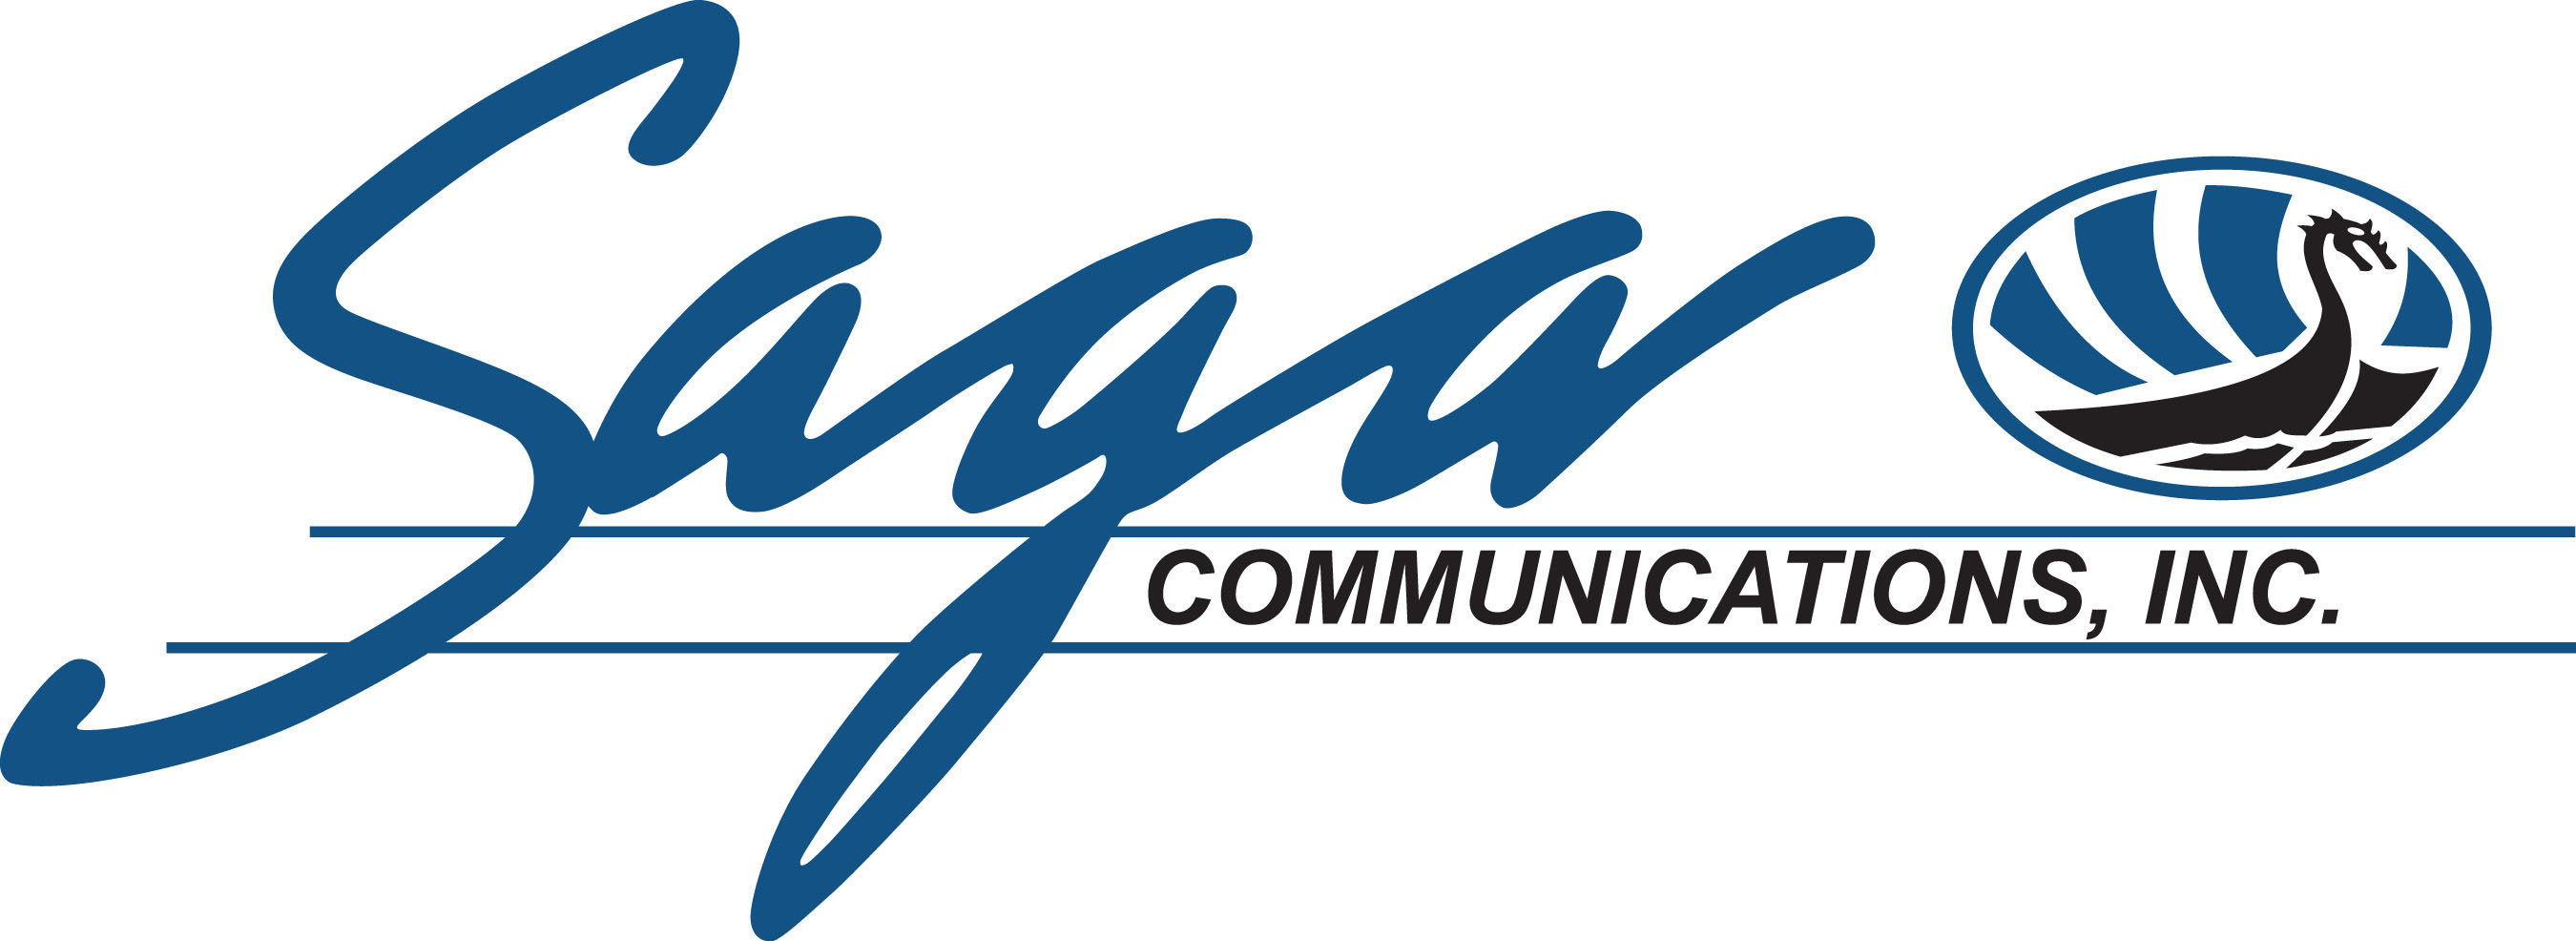 Saga Communications, Inc. logo.